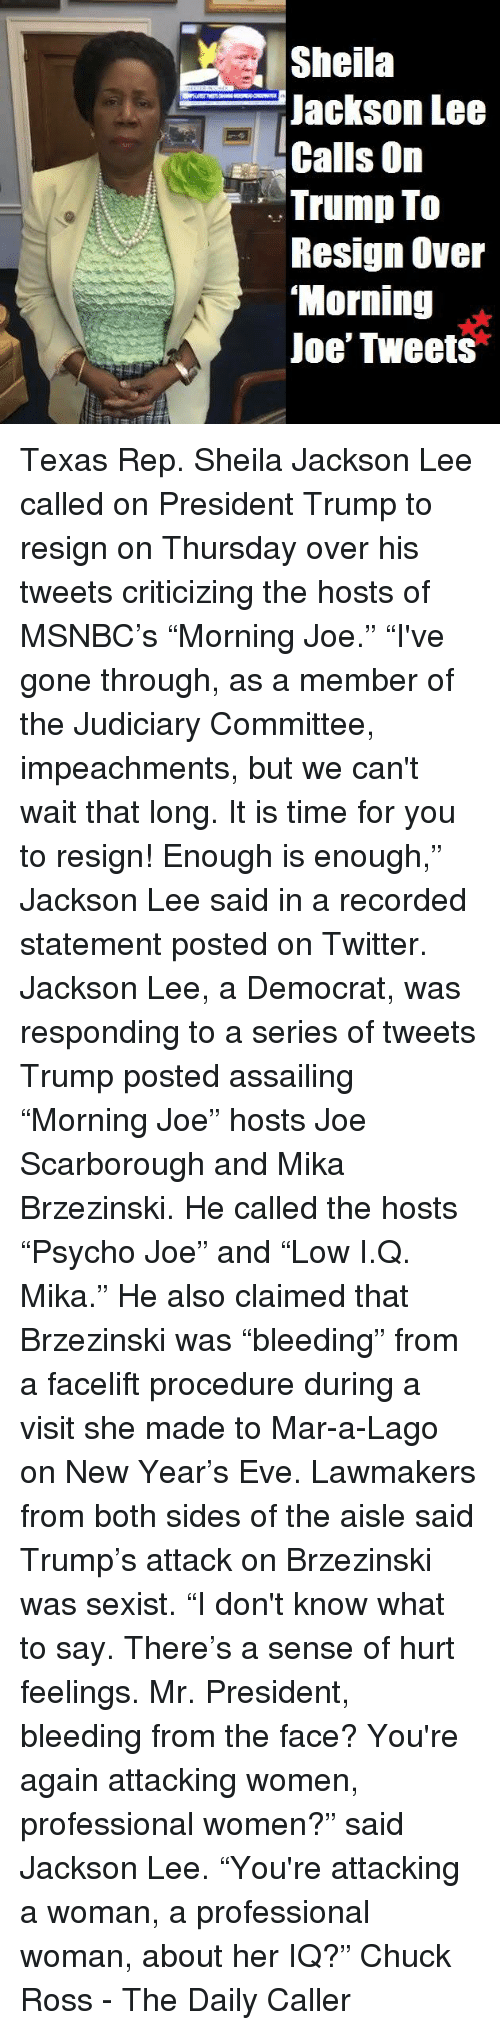 """Memes, New Year's, and Twitter: Sheila  Jackson Lee  Calls On  Trump To  Resign Over  Morning  Joe' Tweets Texas Rep. Sheila Jackson Lee called on President Trump to resign on Thursday over his tweets criticizing the hosts of MSNBC's """"Morning Joe.""""  """"I've gone through, as a member of the Judiciary Committee, impeachments, but we can't wait that long. It is time for you to resign! Enough is enough,"""" Jackson Lee said in a recorded statement posted on Twitter.  Jackson Lee, a Democrat, was responding to a series of tweets Trump posted assailing """"Morning Joe"""" hosts Joe Scarborough and Mika Brzezinski. He called the hosts """"Psycho Joe"""" and """"Low I.Q. Mika.""""  He also claimed that Brzezinski was """"bleeding"""" from a facelift procedure during a visit she made to Mar-a-Lago on New Year's Eve.  Lawmakers from both sides of the aisle said Trump's attack on Brzezinski was sexist.  """"I don't know what to say. There's a sense of hurt feelings. Mr. President, bleeding from the face? You're again attacking women, professional women?"""" said Jackson Lee.  """"You're attacking a woman, a professional woman, about her IQ?""""  Chuck Ross - The Daily Caller"""